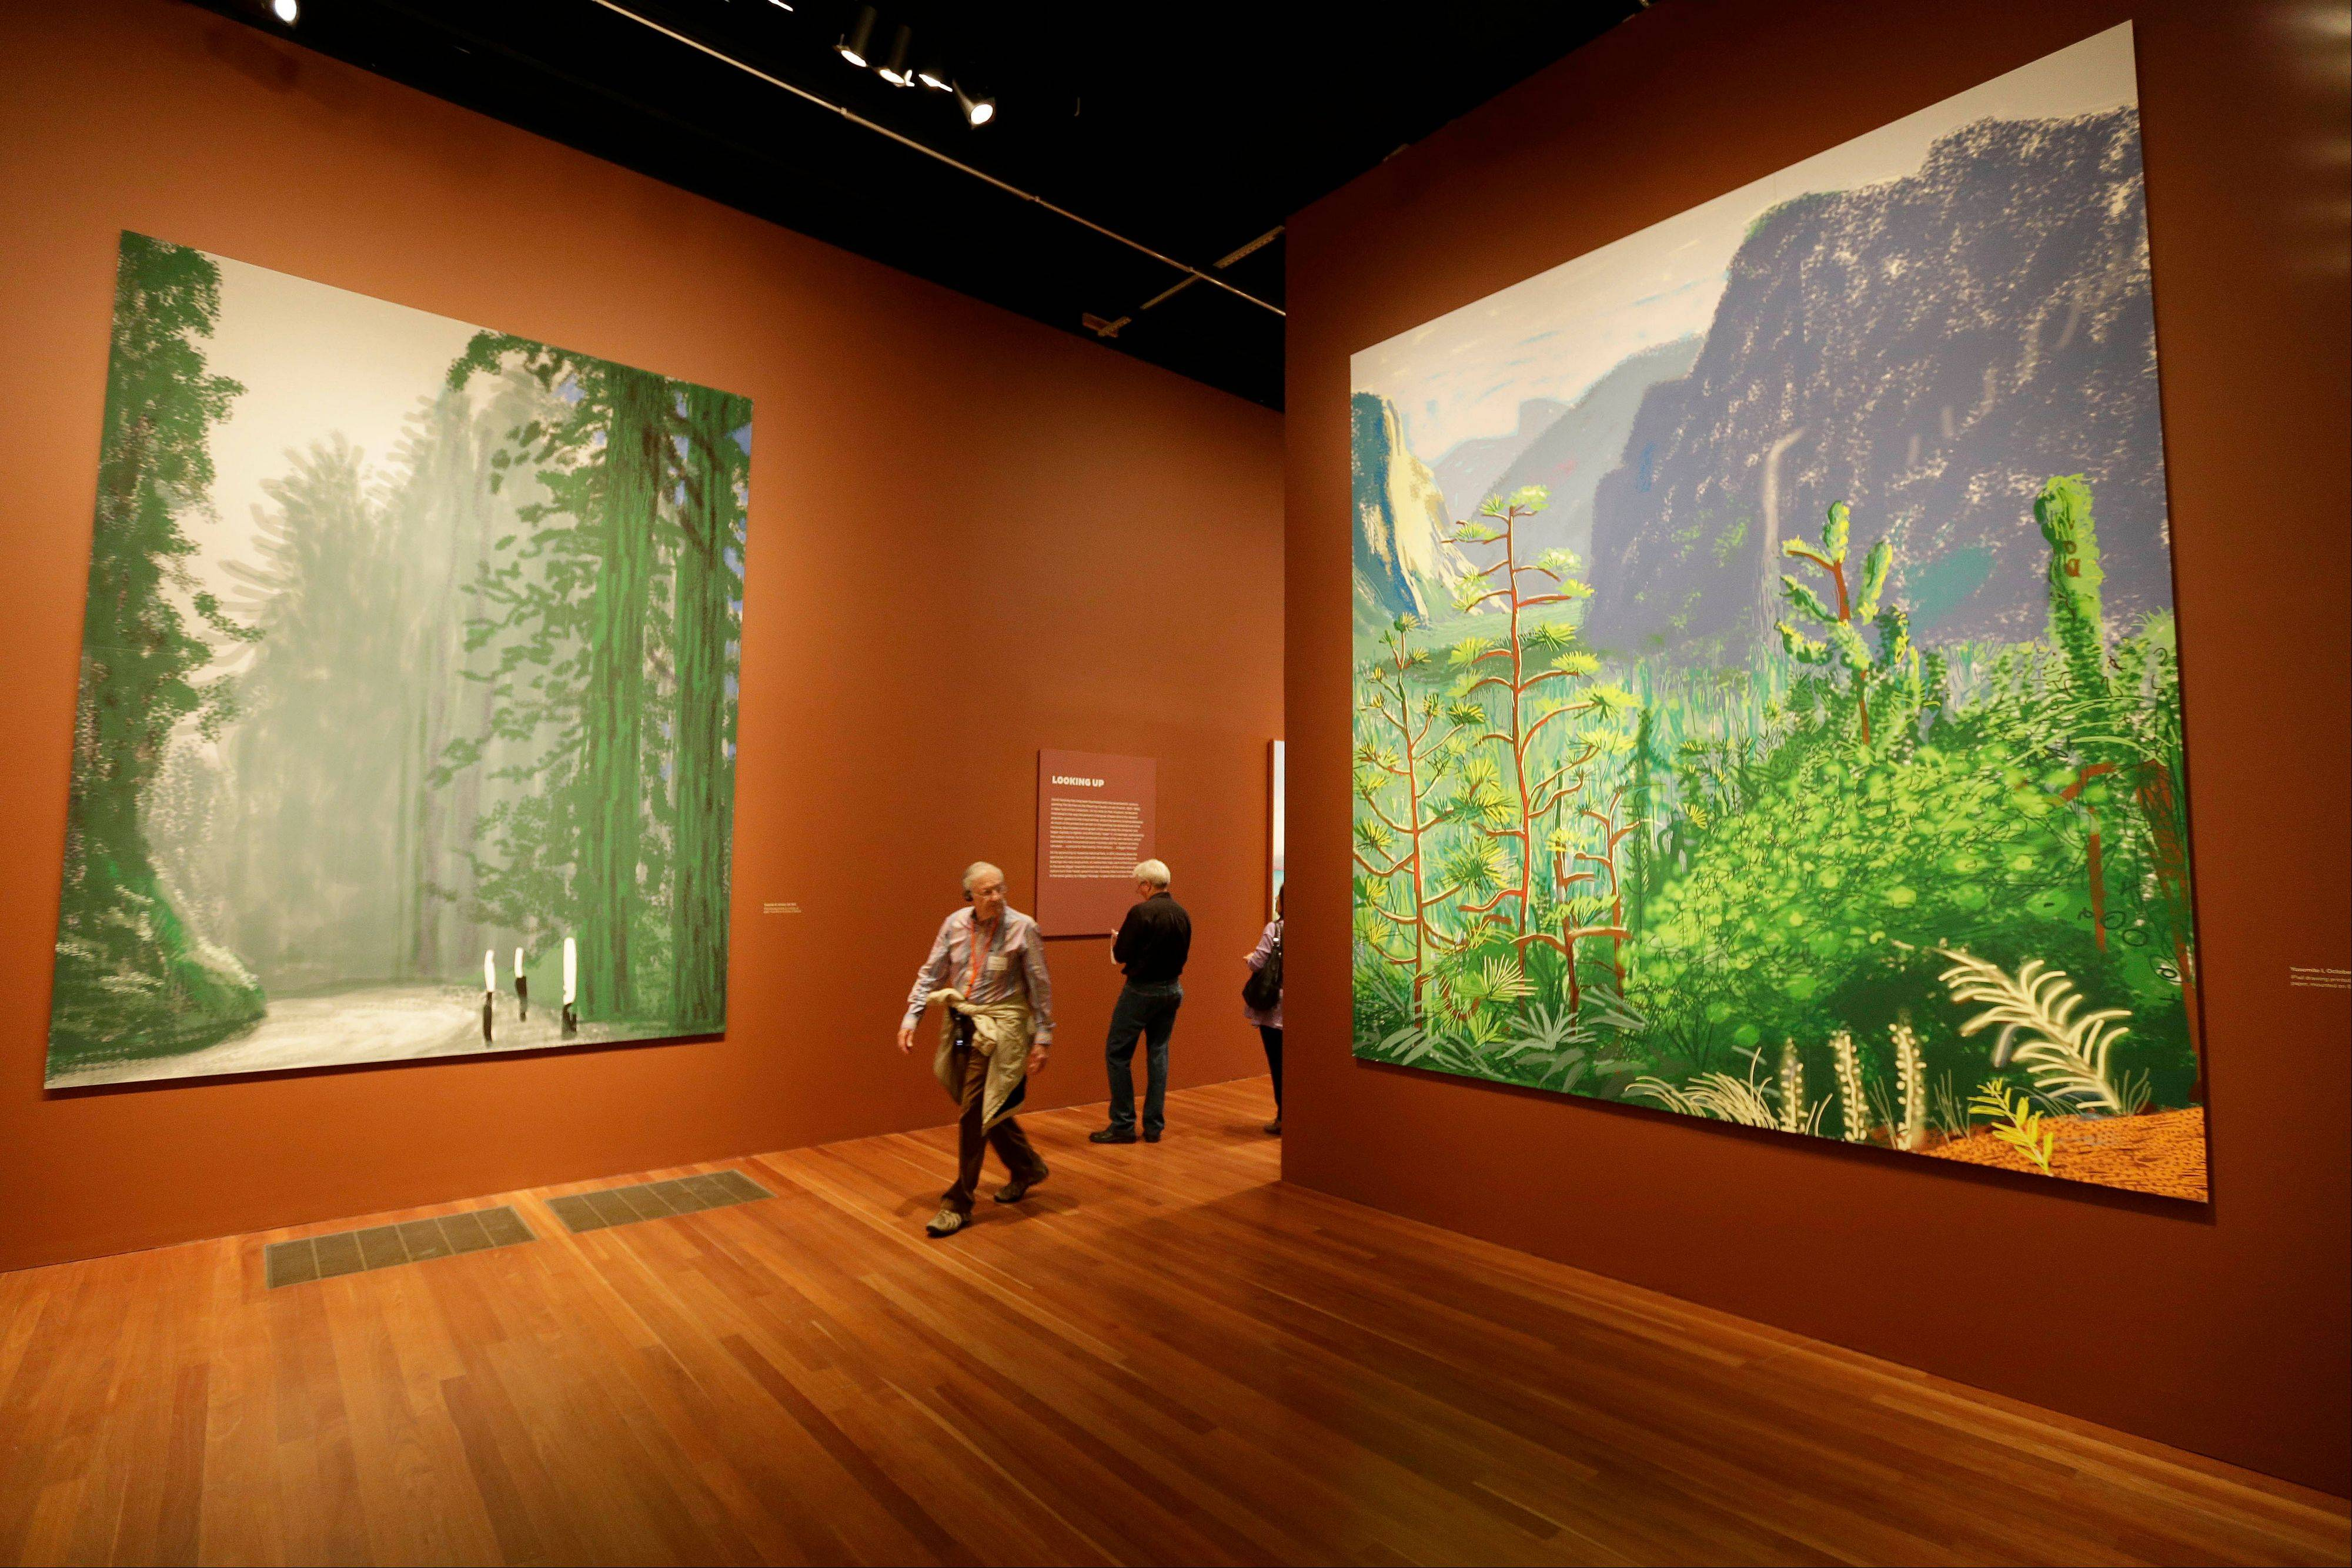 A man walks between a pair of 12-foot high views of Yosemite National Park, made by David Hockney using an iPad, at an exhibit in San Francisco.